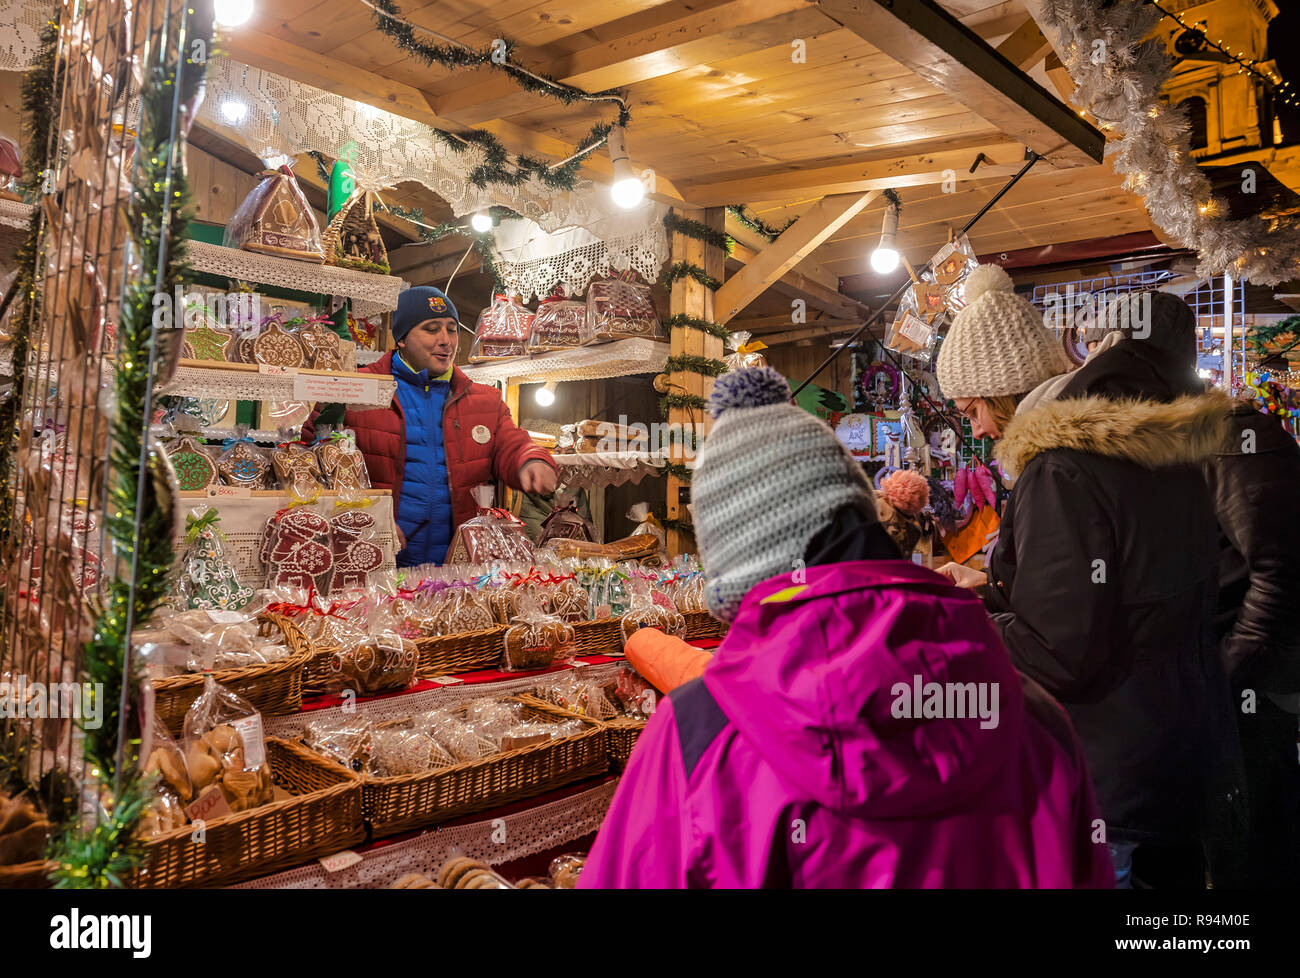 BUDAPEST, HUNGARY - DECEMBER 16: A stallkeeper offers gingerbread at the Christmas Market in front of the Szent István Bazilika (St. Stephen's Basilica) on December 16, 2018 in Budapest, Hungary. The best-known Christmas Market of Budapest is organised from year to year in front of Szent István Bazilika (St. Stephen's Basilica) at the Szent István tér (St. Stephen square). - Stock Image